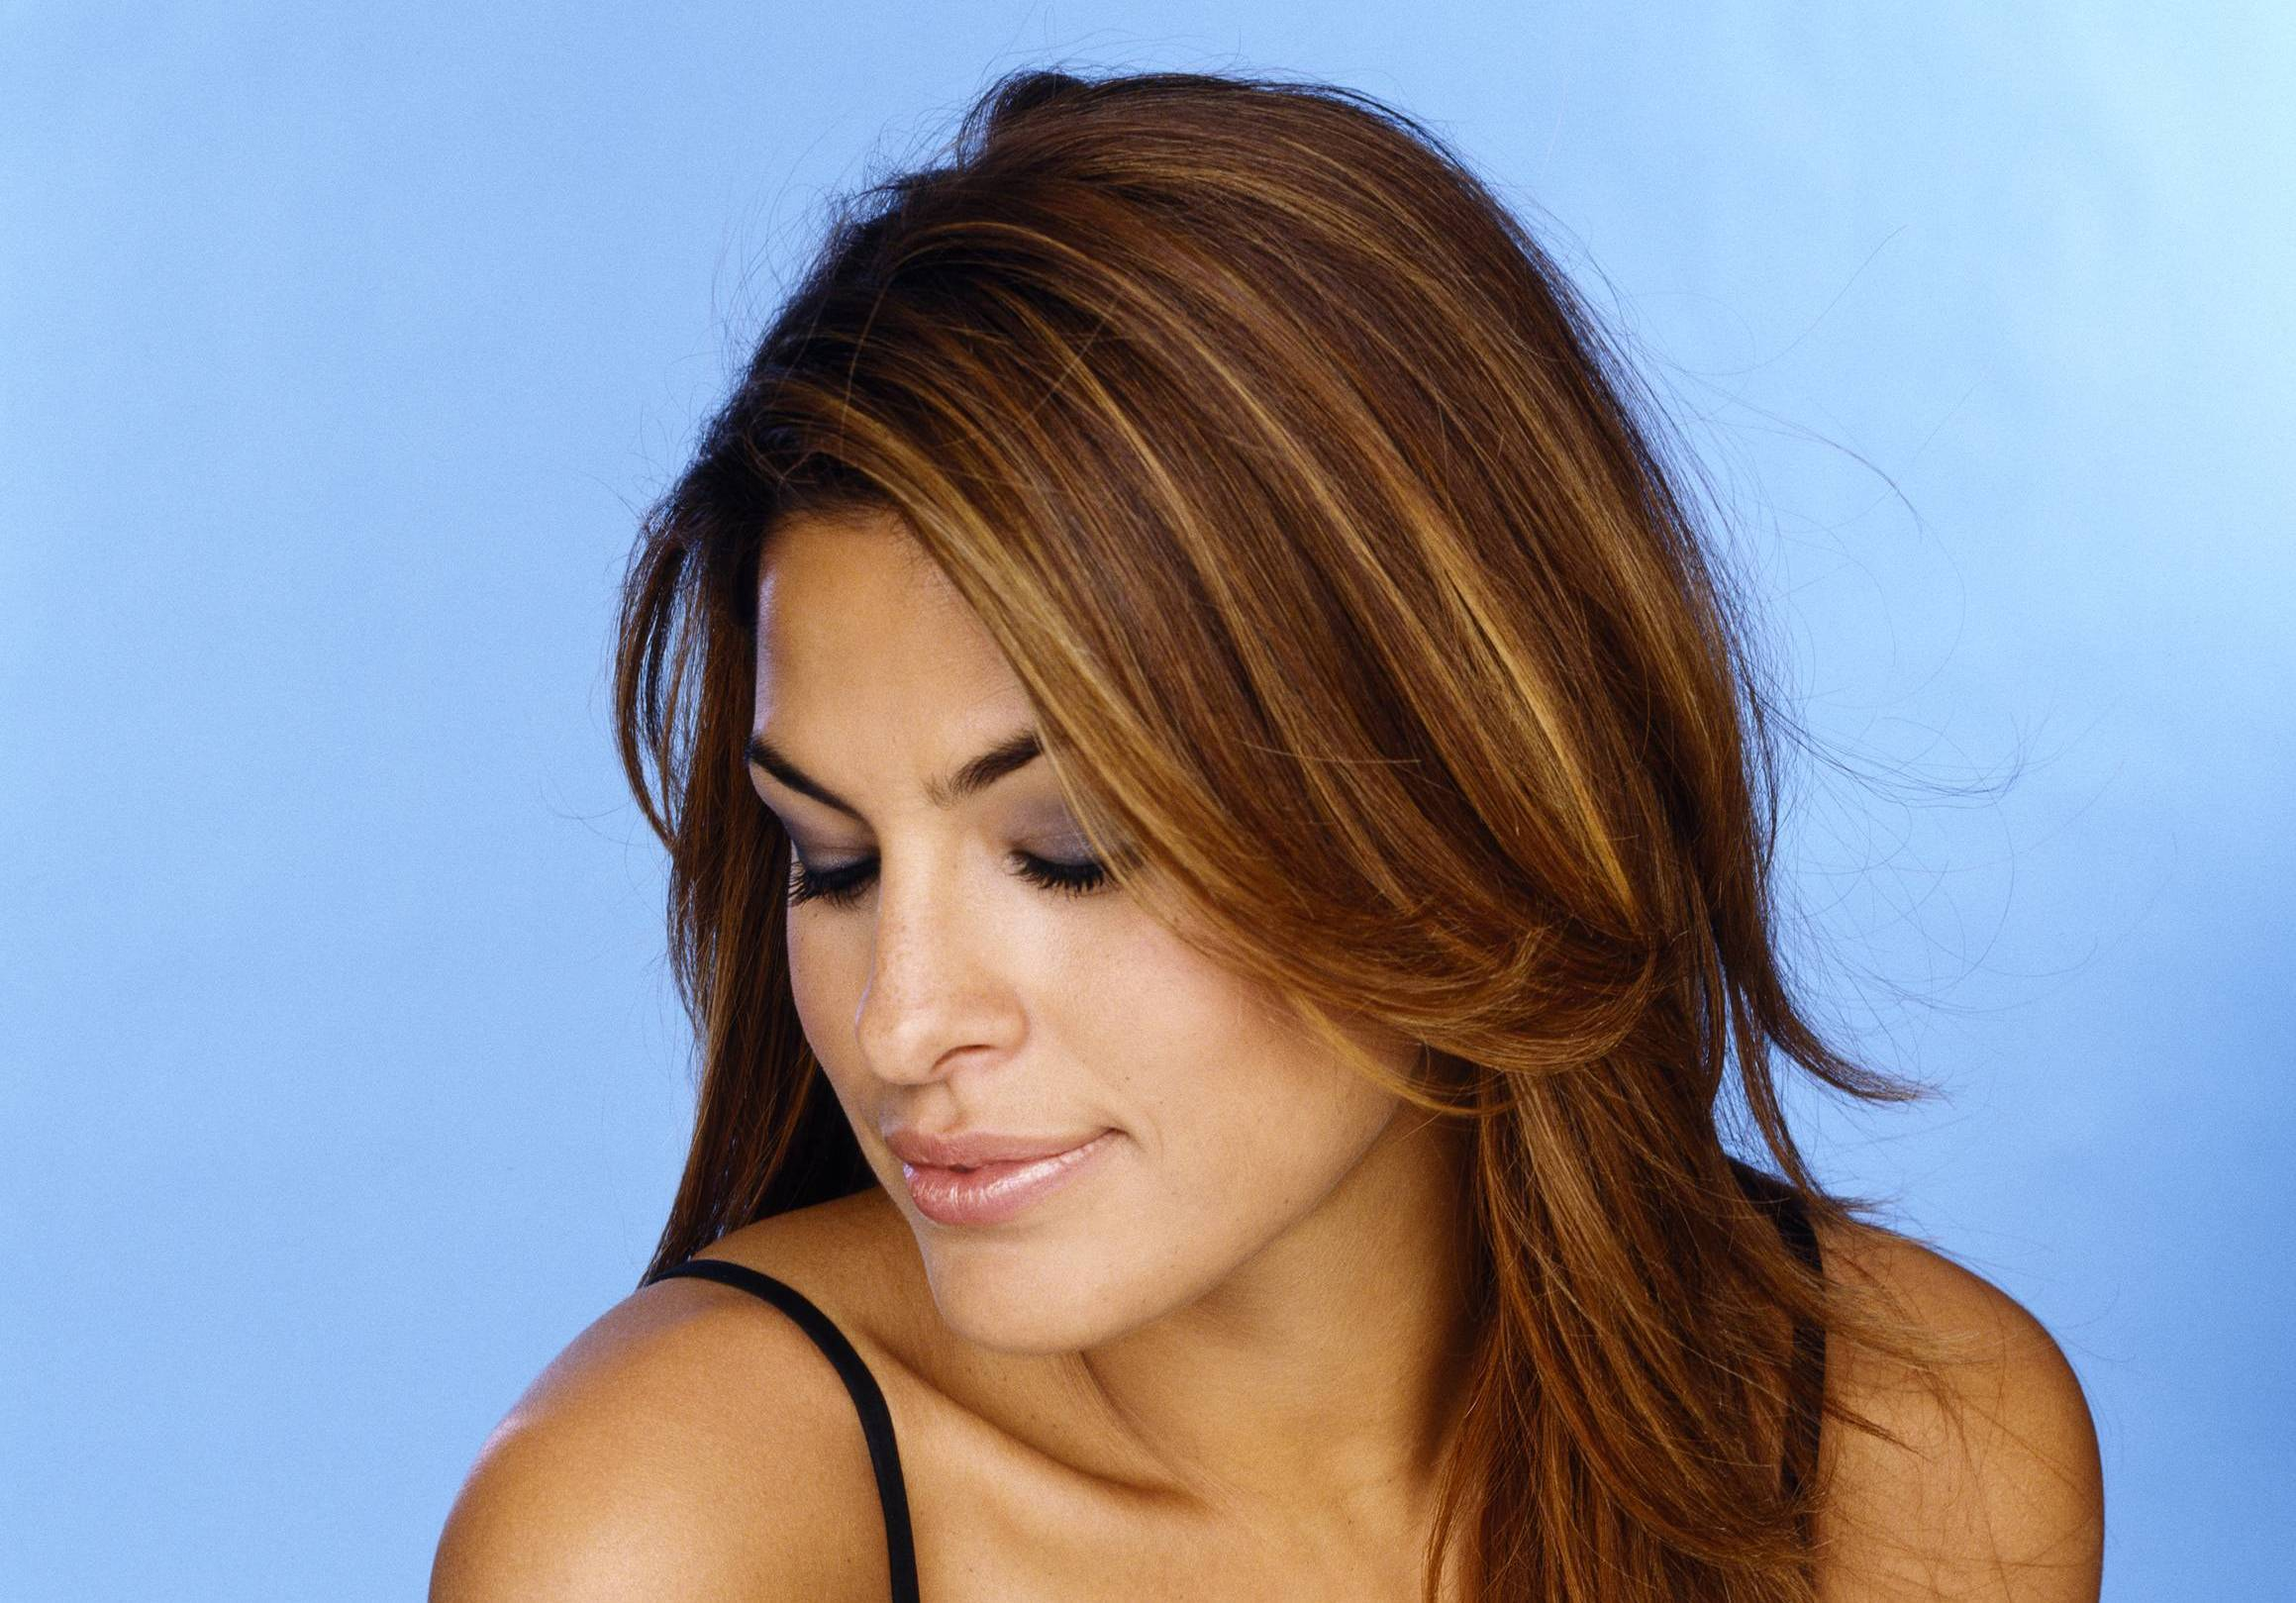 Eva Mendes Full HD Wallpaper and Background Image